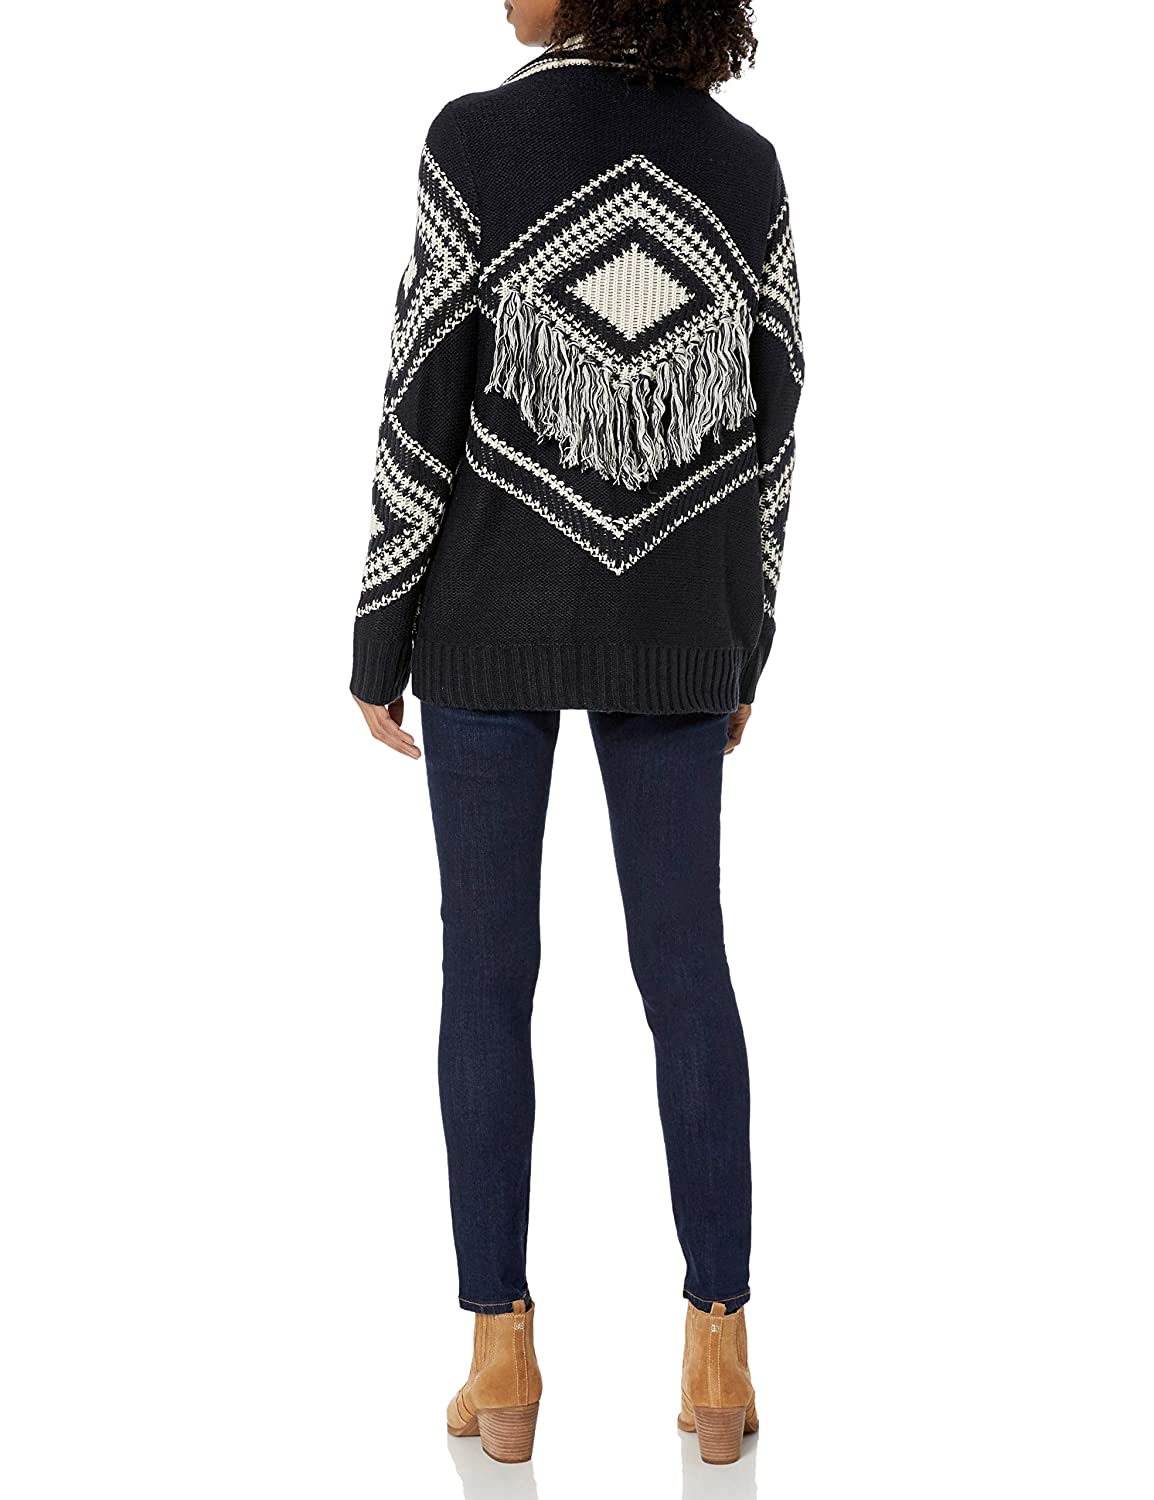 Angie Womens Open Cardigan Sweater with Fringe